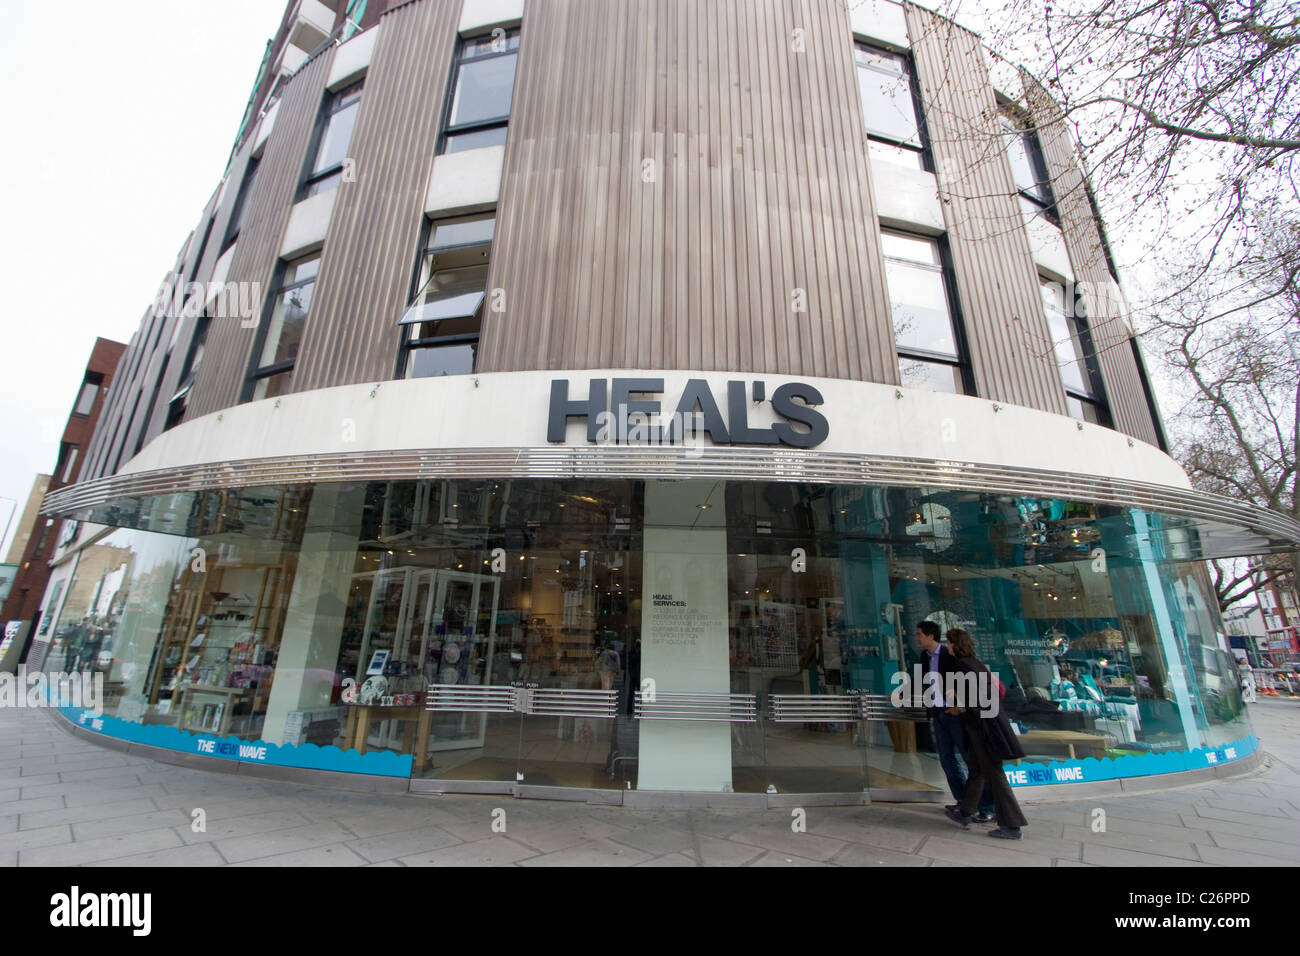 Heals furniture shop store Stock Photo, Royalty Free Image ... | heals furniture store